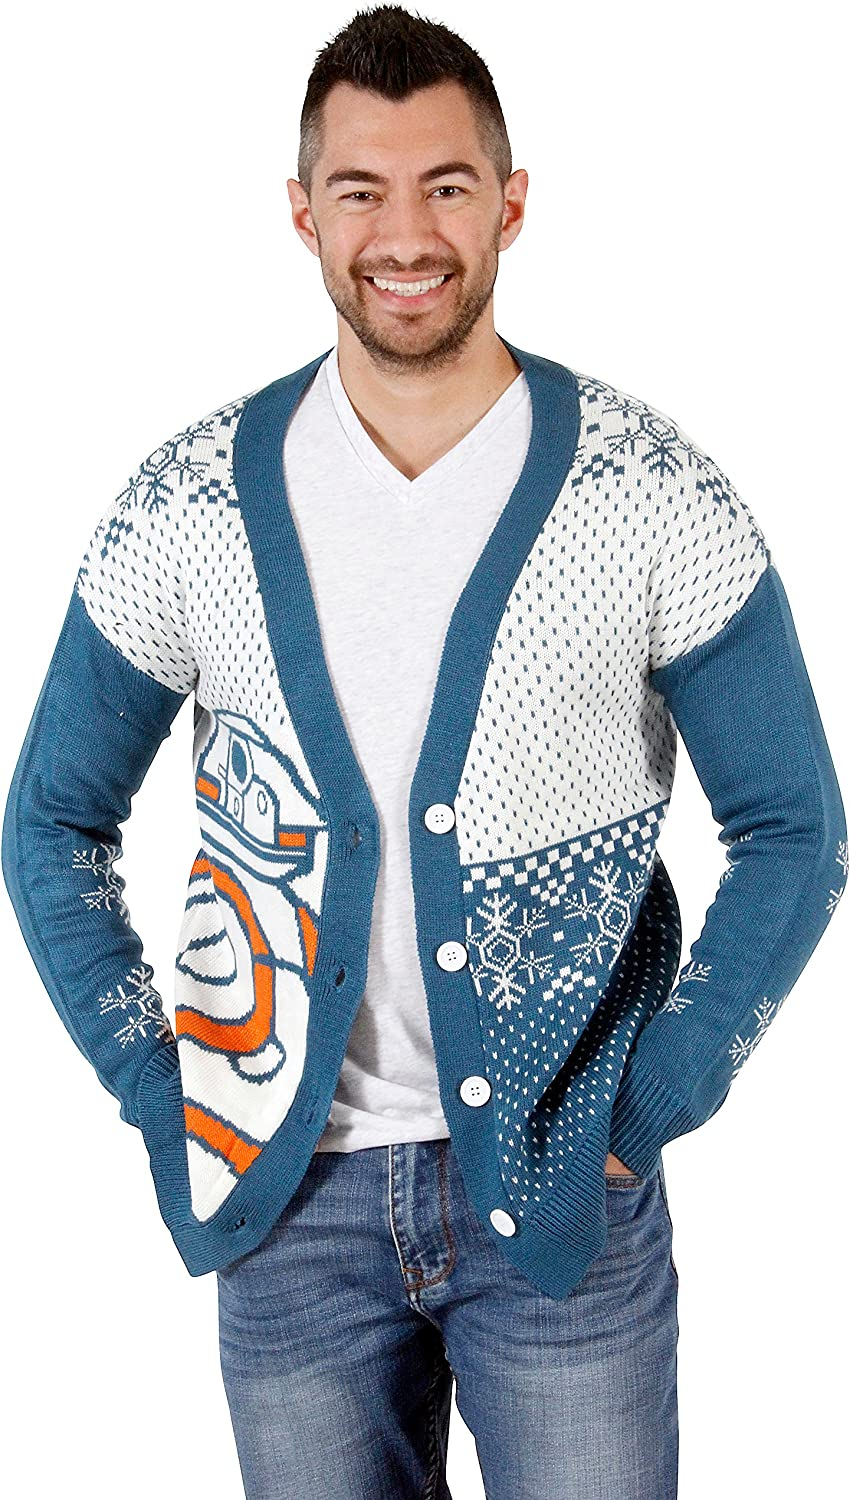 Star Wars BB8 Droid Ugly Christmas Cardigan Sweater